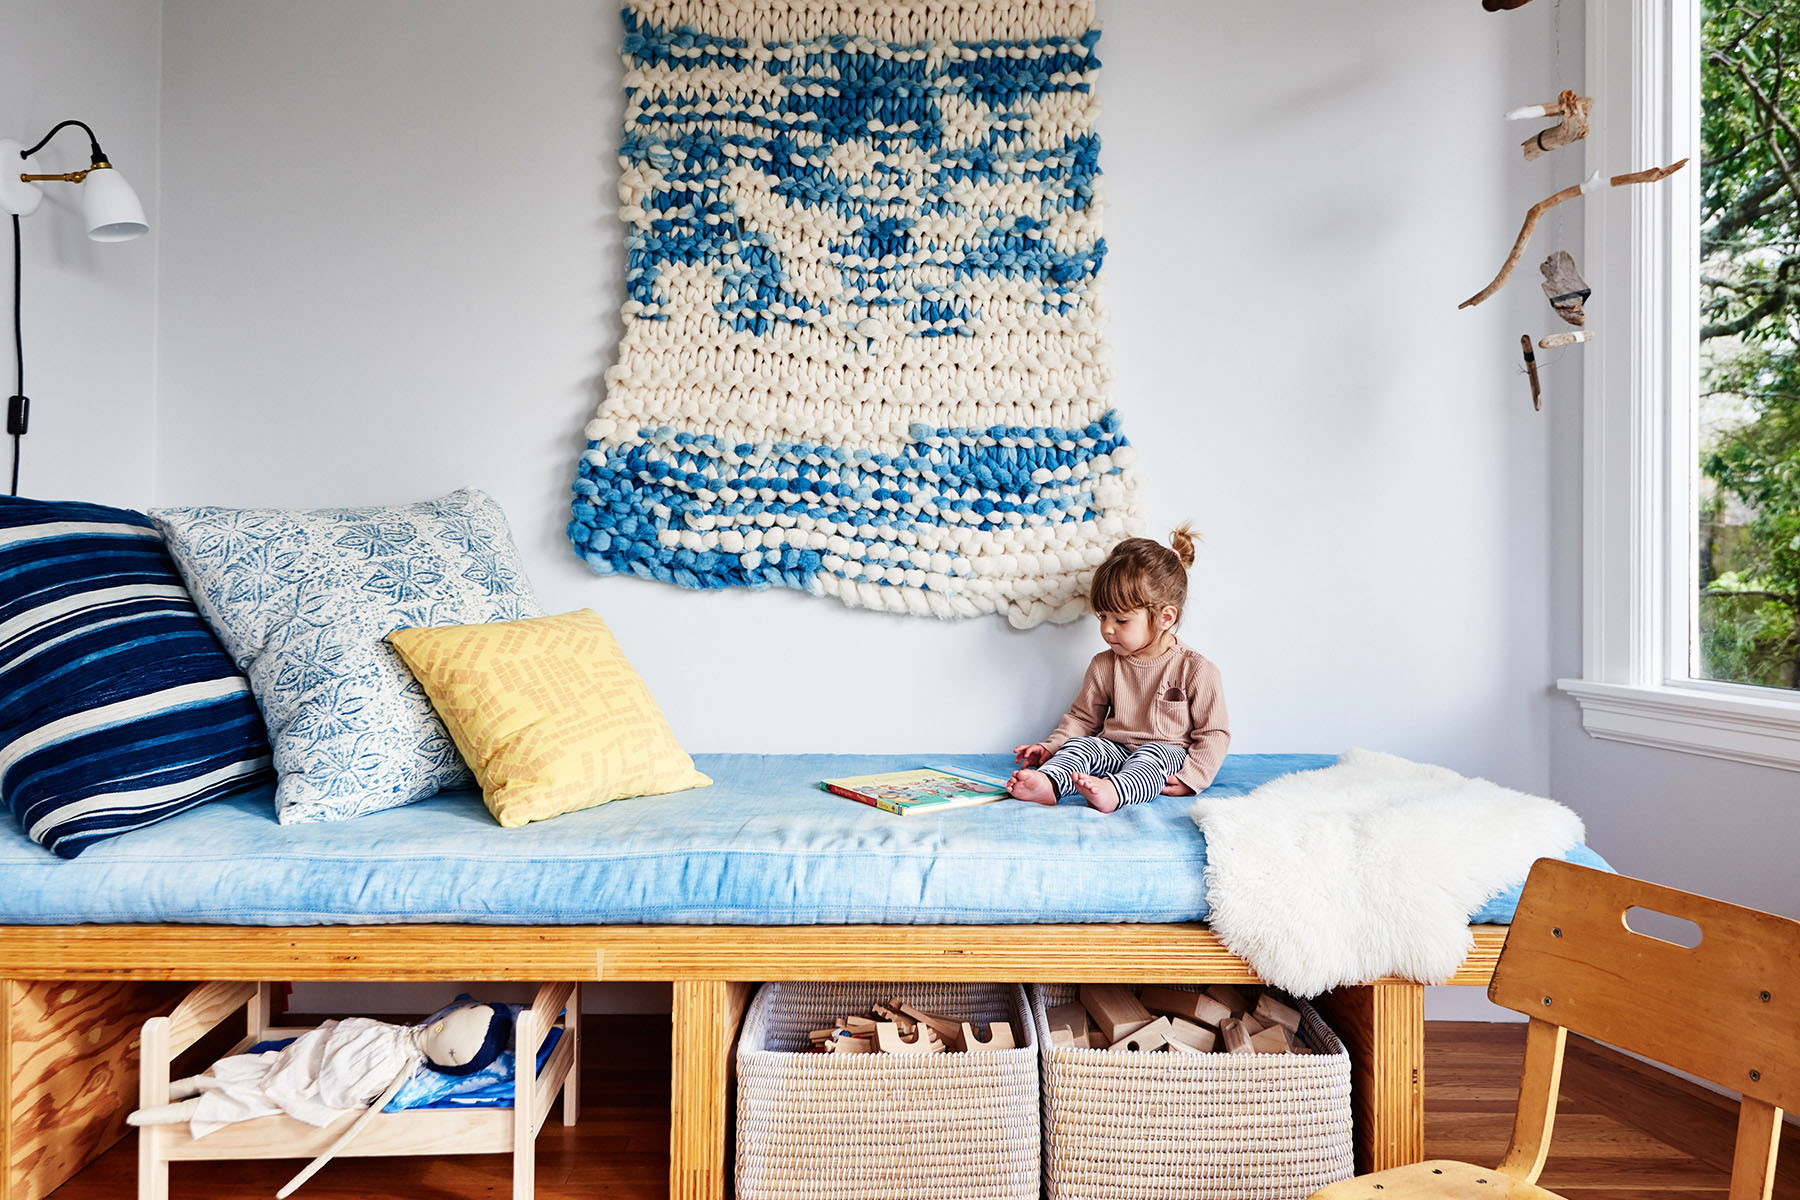 Martinez' home is filled with childlike treasures, including this striking custom-made wall hanging, created for the designer by her close friend Lana Weber of de Lana Textiles. Custom Daybed | de Lana Textiles Bedding | The Container Store Baskets | Custom, Jenny Pennywood Pillows | Amazon Sheepskin | Custom Branch Mobile | Barn Light Electric Wall Sconce.